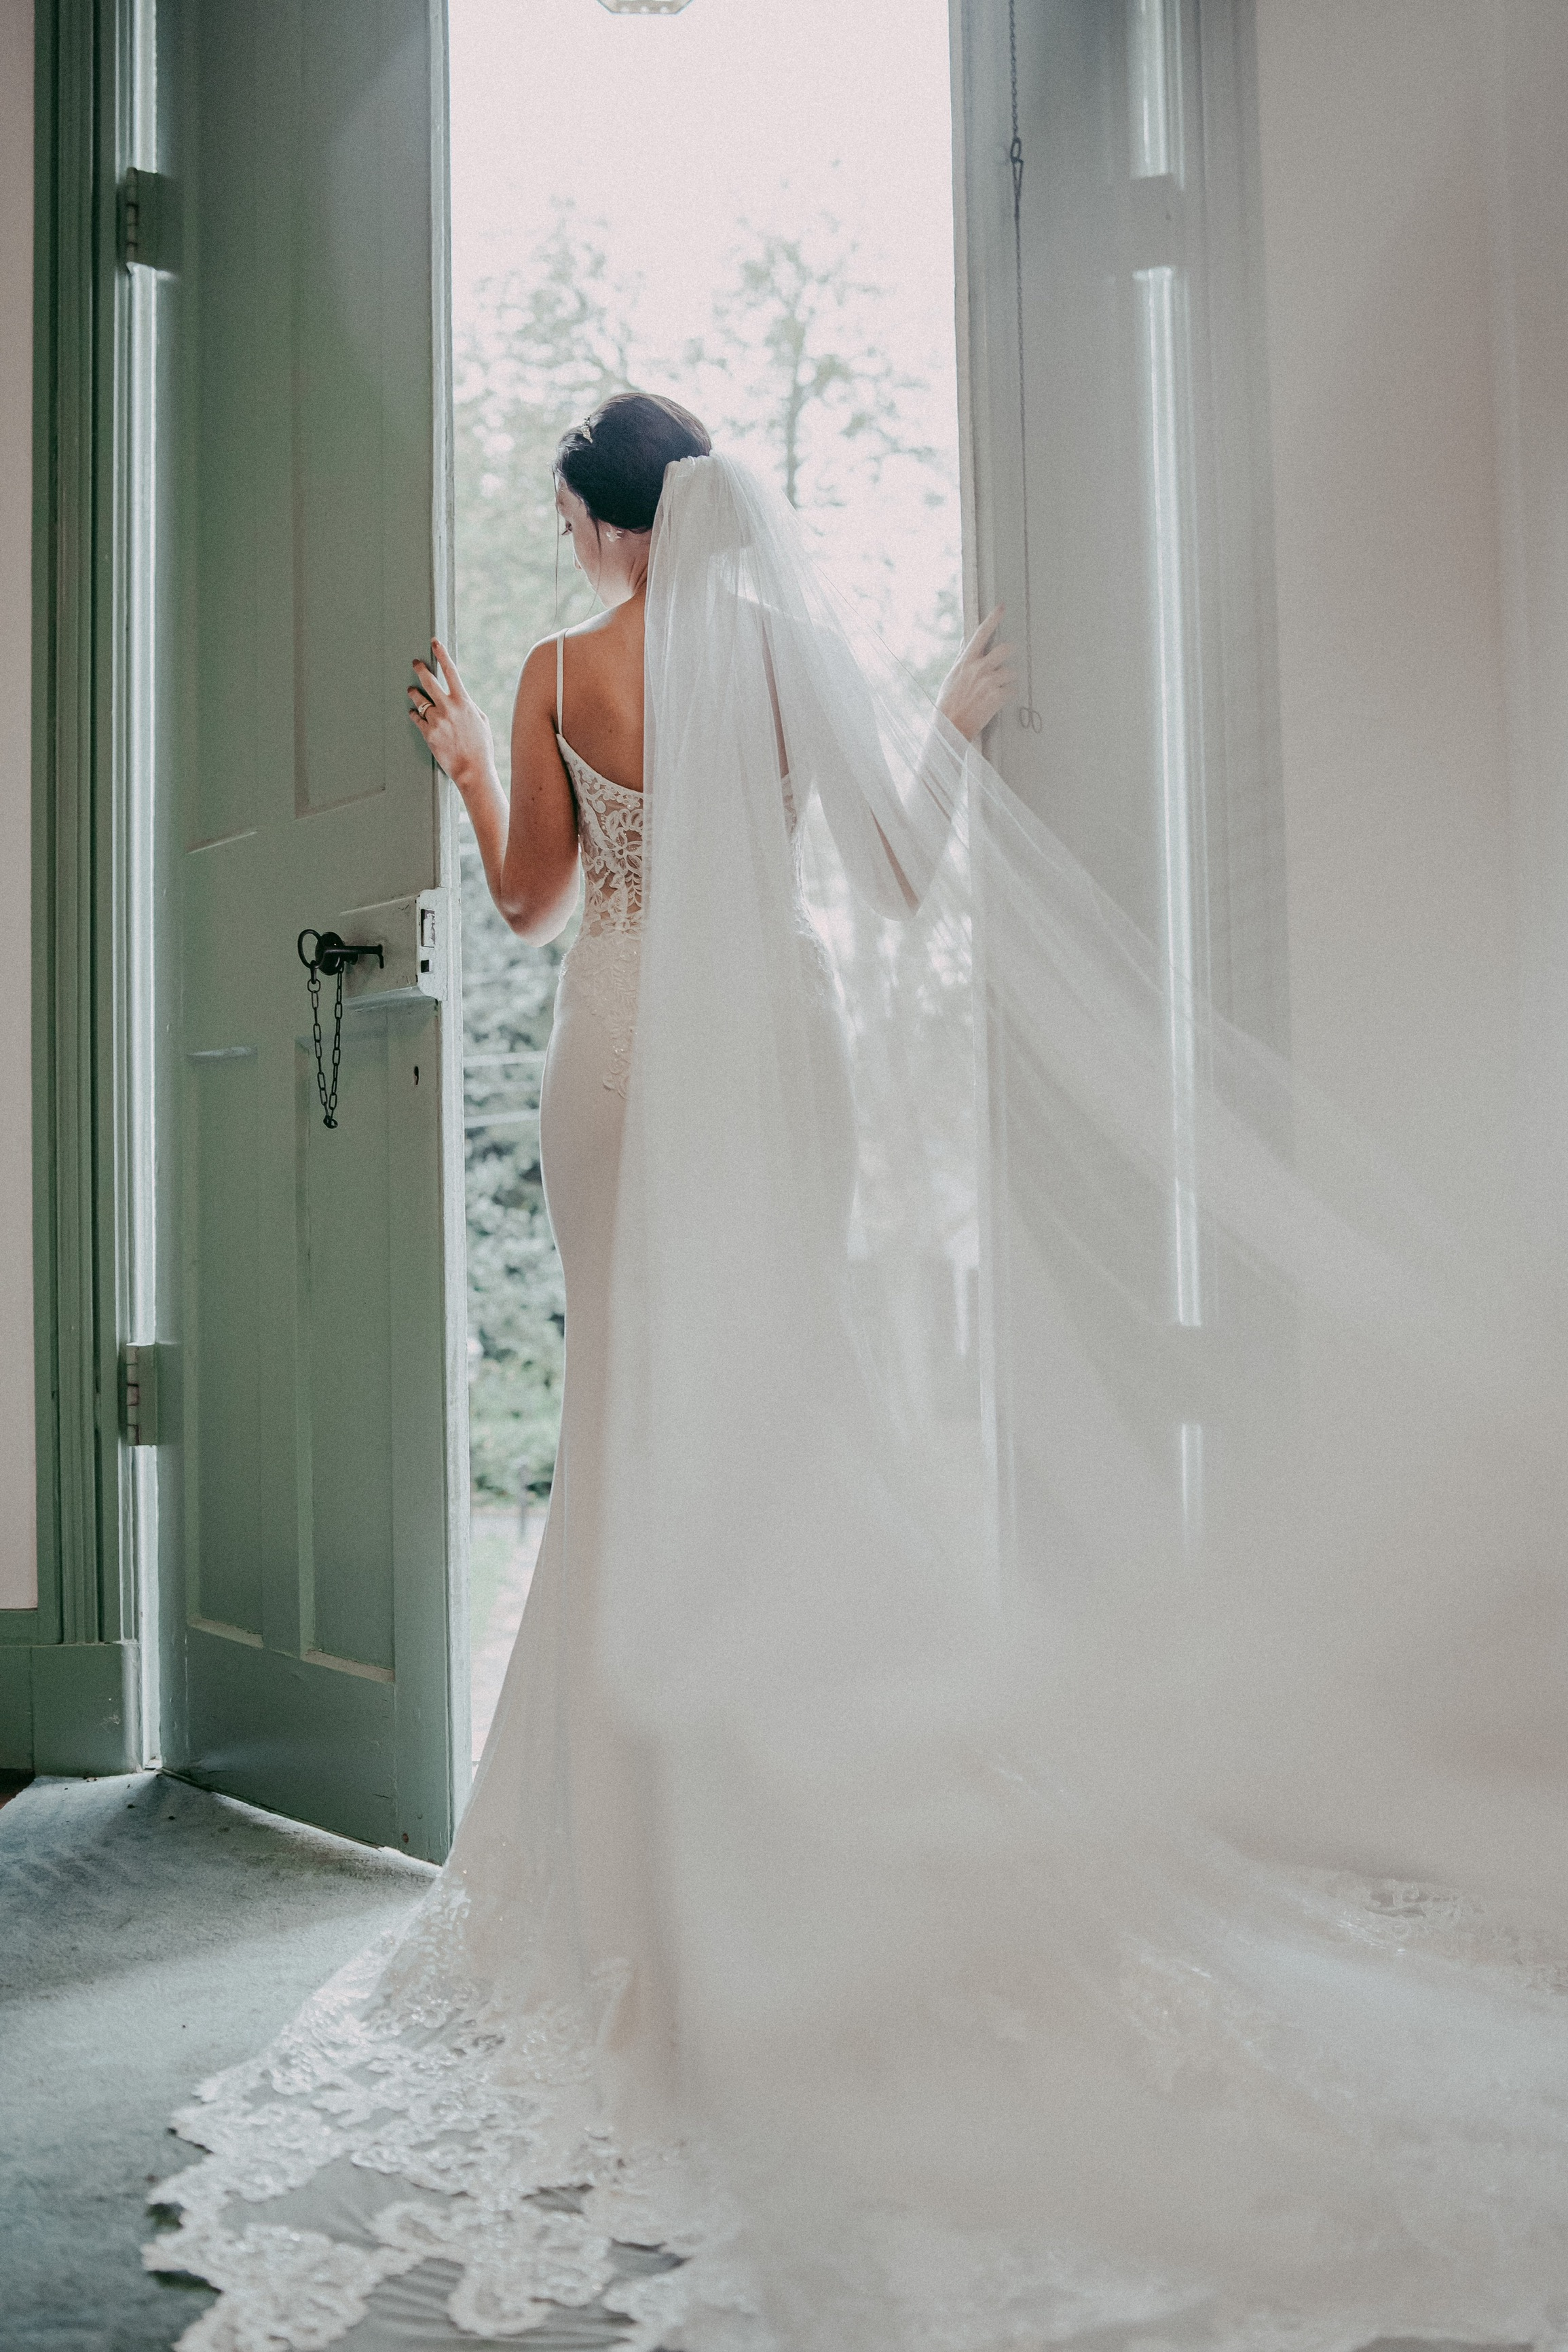 wedding venues set the mood and tone for wedding day